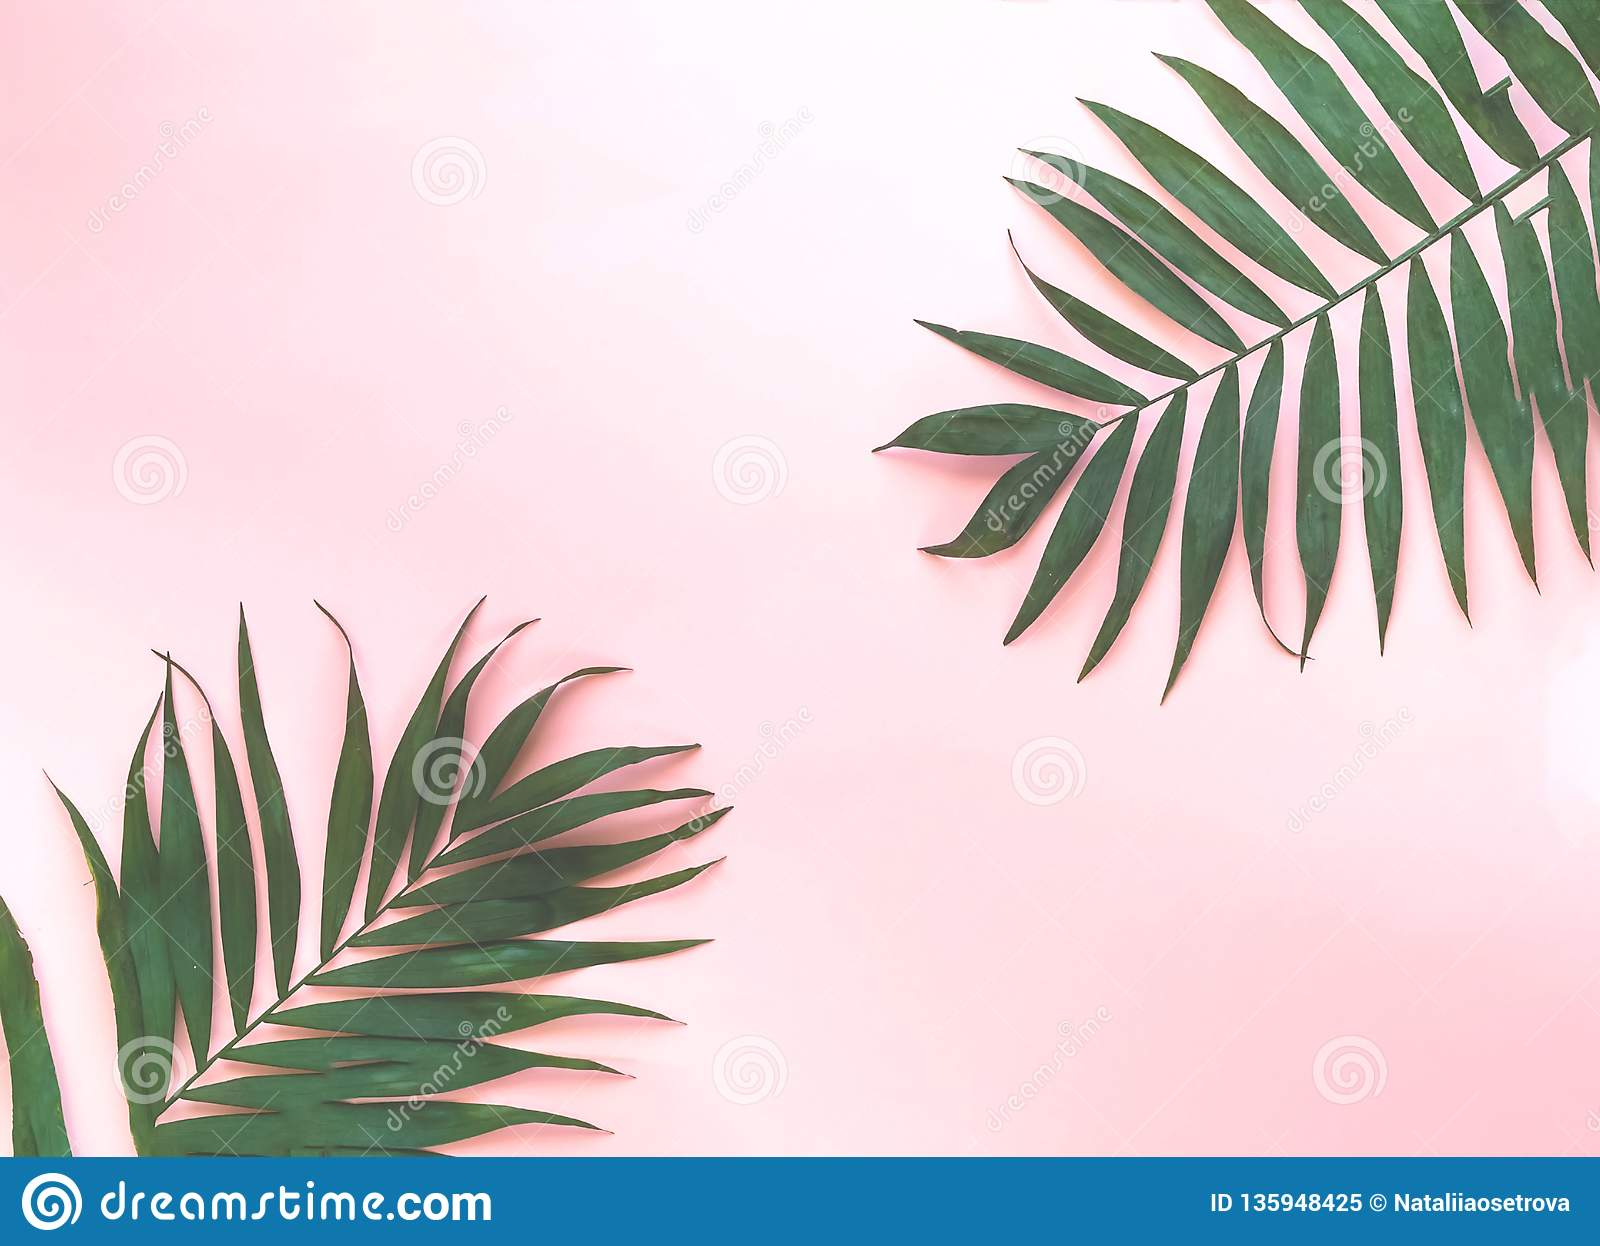 Variations Of Tropical Palm Leaves On Light Texture Creative Tropical Leaves On Pink Background Stock Image Image Of Detail Foliage 135948425 Find over 100+ of the best free tropical leaves images. https www dreamstime com variations tropical palm leaves light texture creative tropical leaves pink background variations tropical palm leaves image135948425